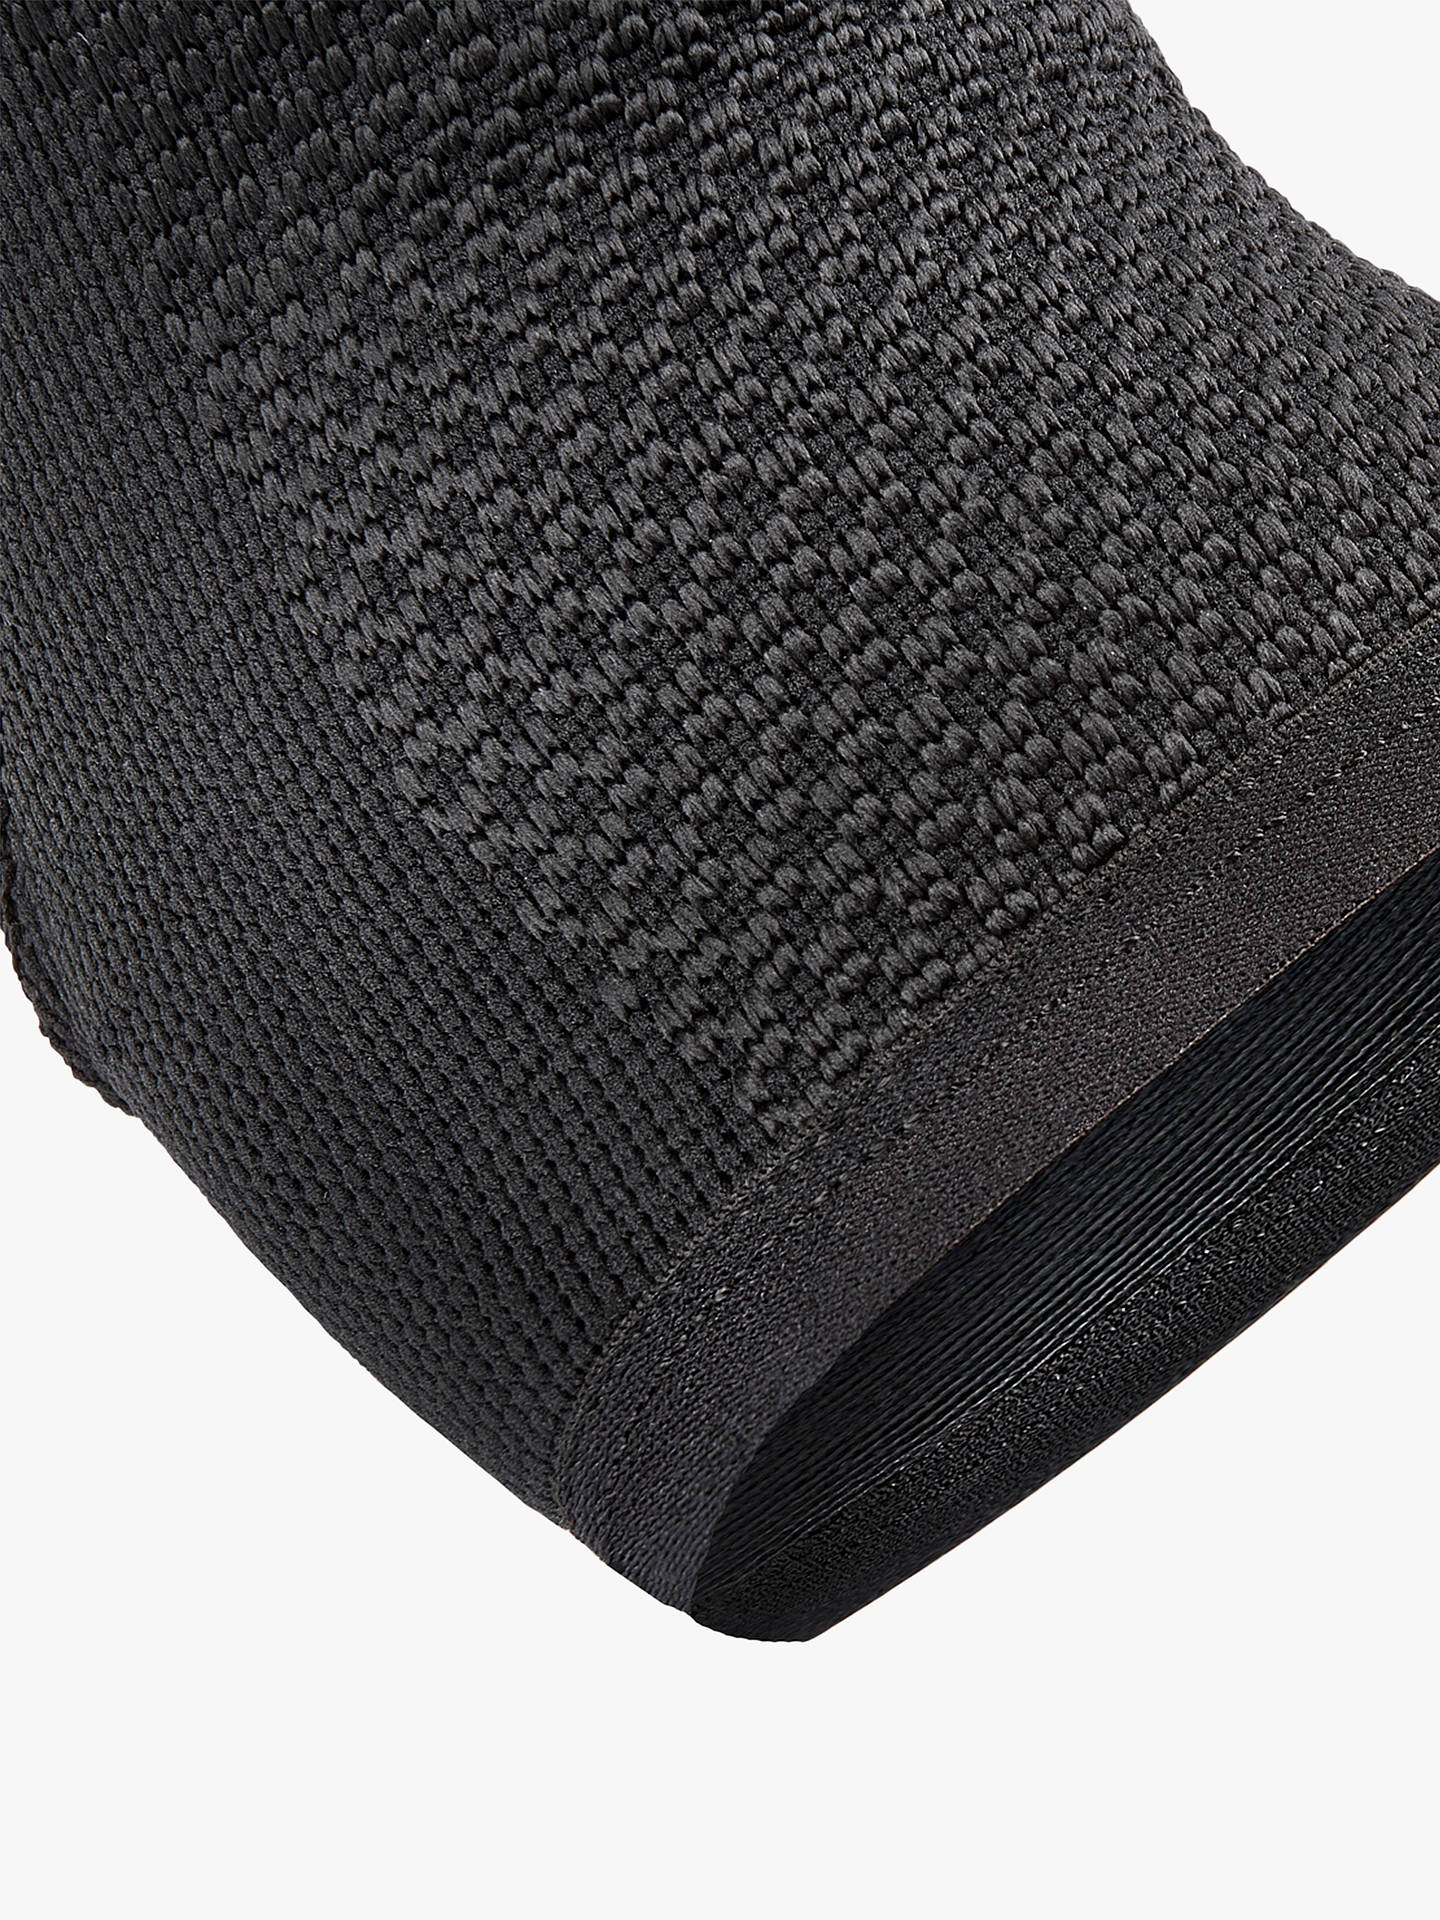 Buy adidas Ankle Support Brace, Black, M Online at johnlewis.com